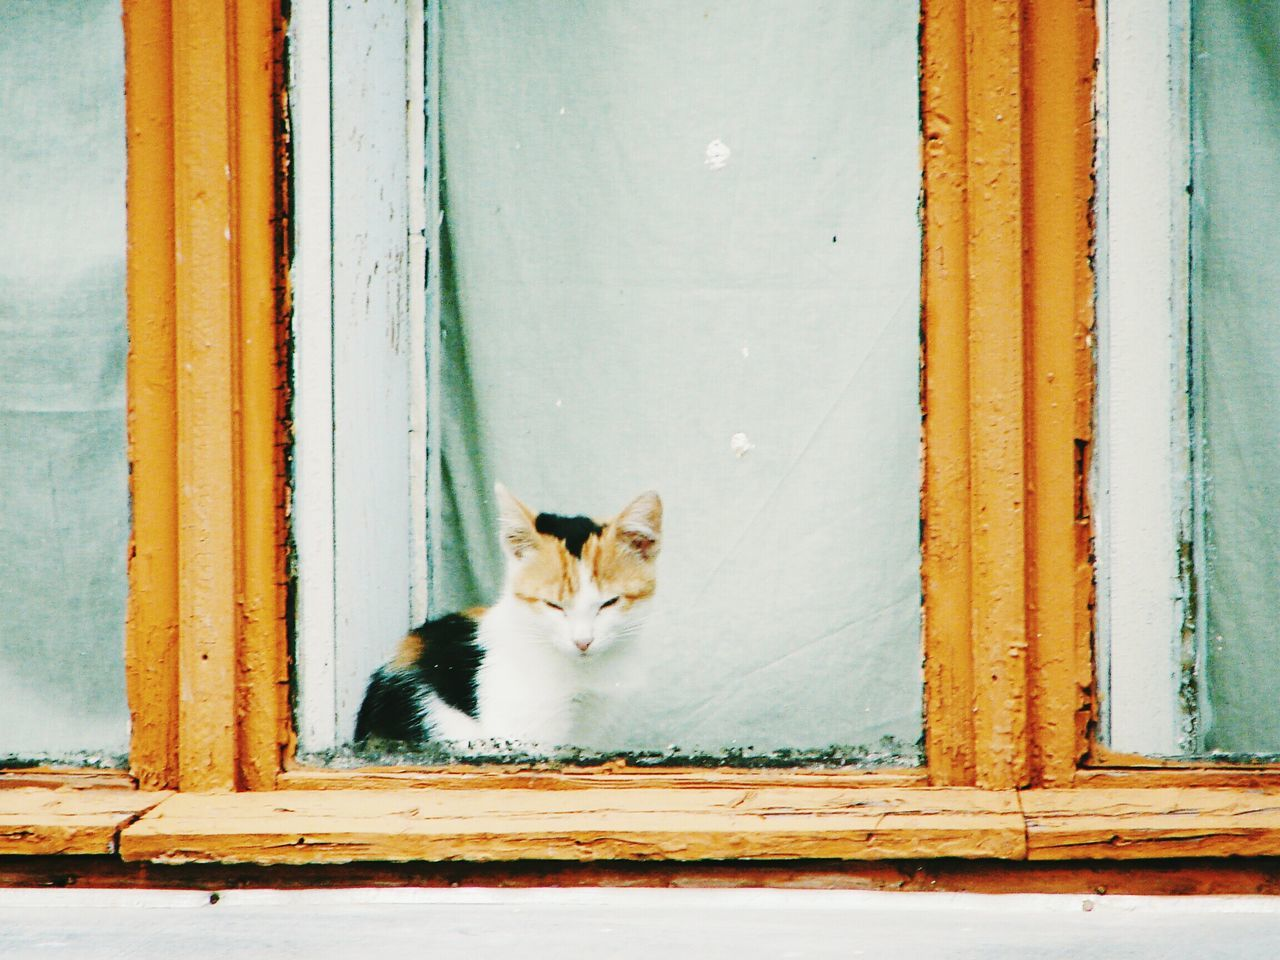 Domestic Cat Pets Domestic Animals One Animal Animal Themes Feline Looking At Camera Tortoiseshell Cat No People Day Outdoors In The Window Looking Into A Window